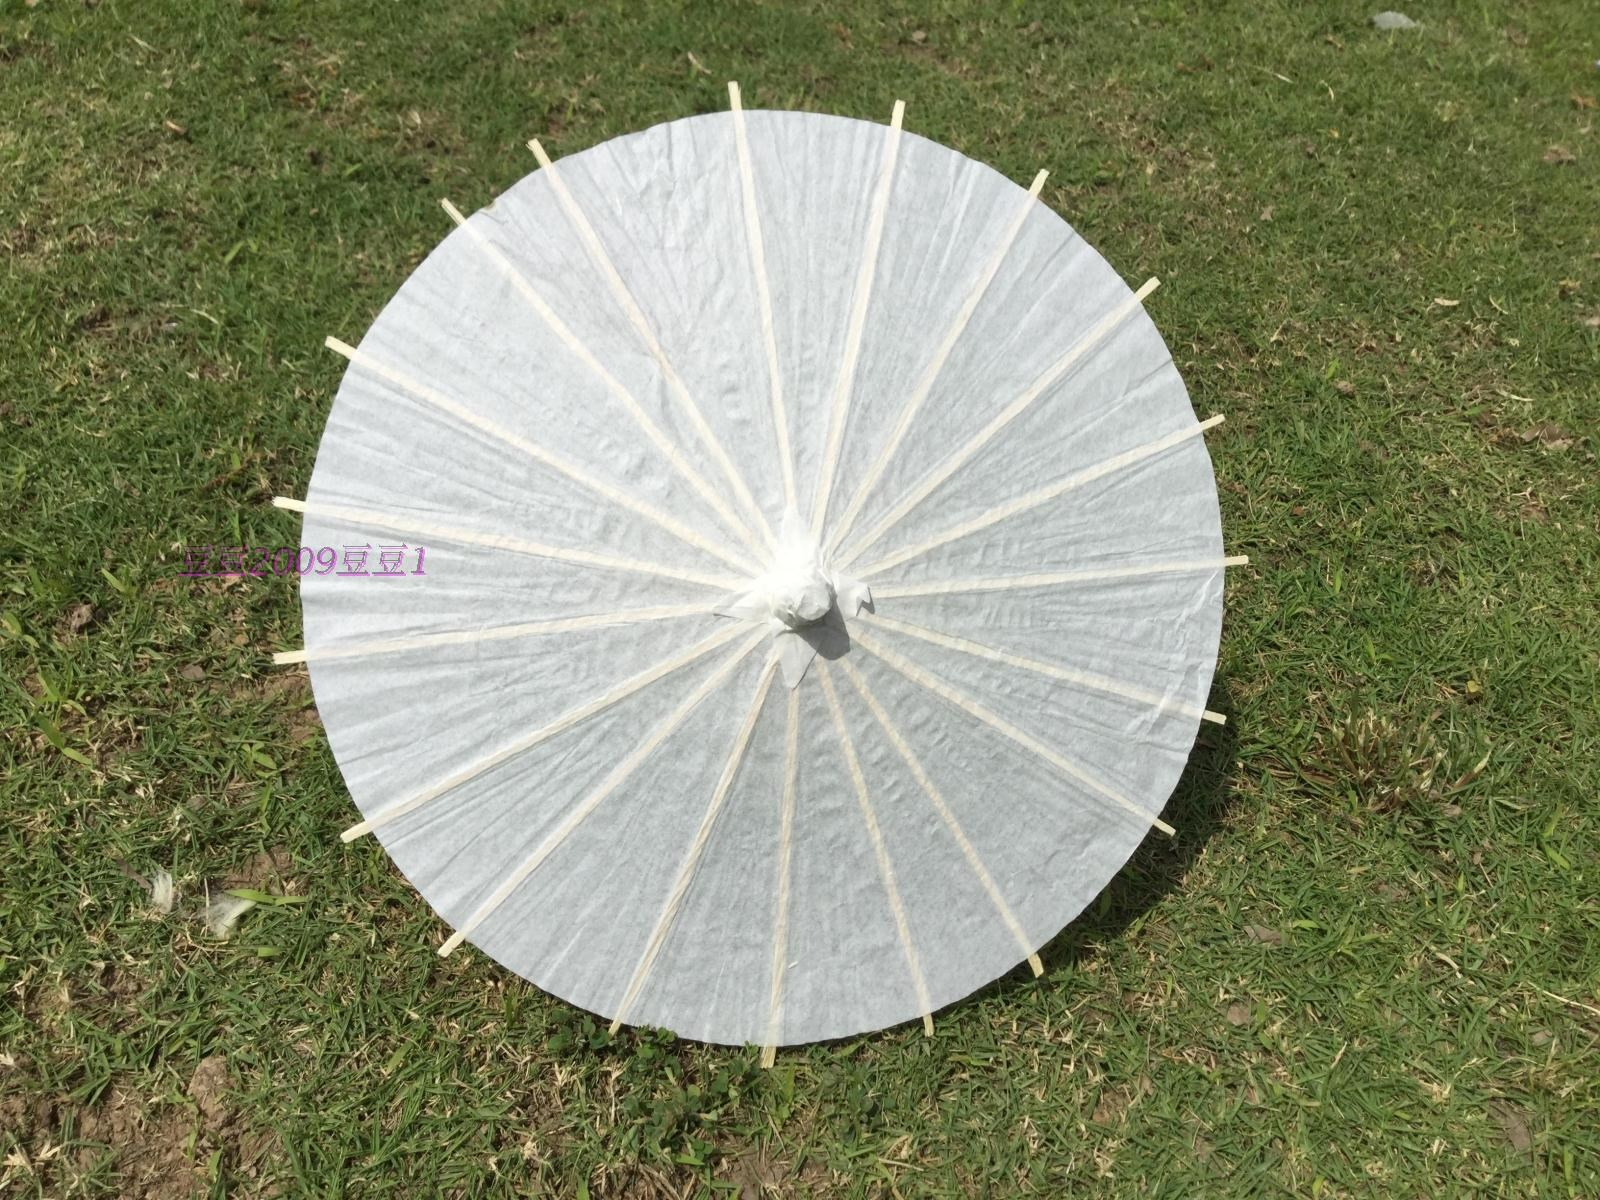 Oil-paper umbrella self-made antique 60cm white antique oil-paper umbrella painting children's umbrella elegant hands-on white paper folding table